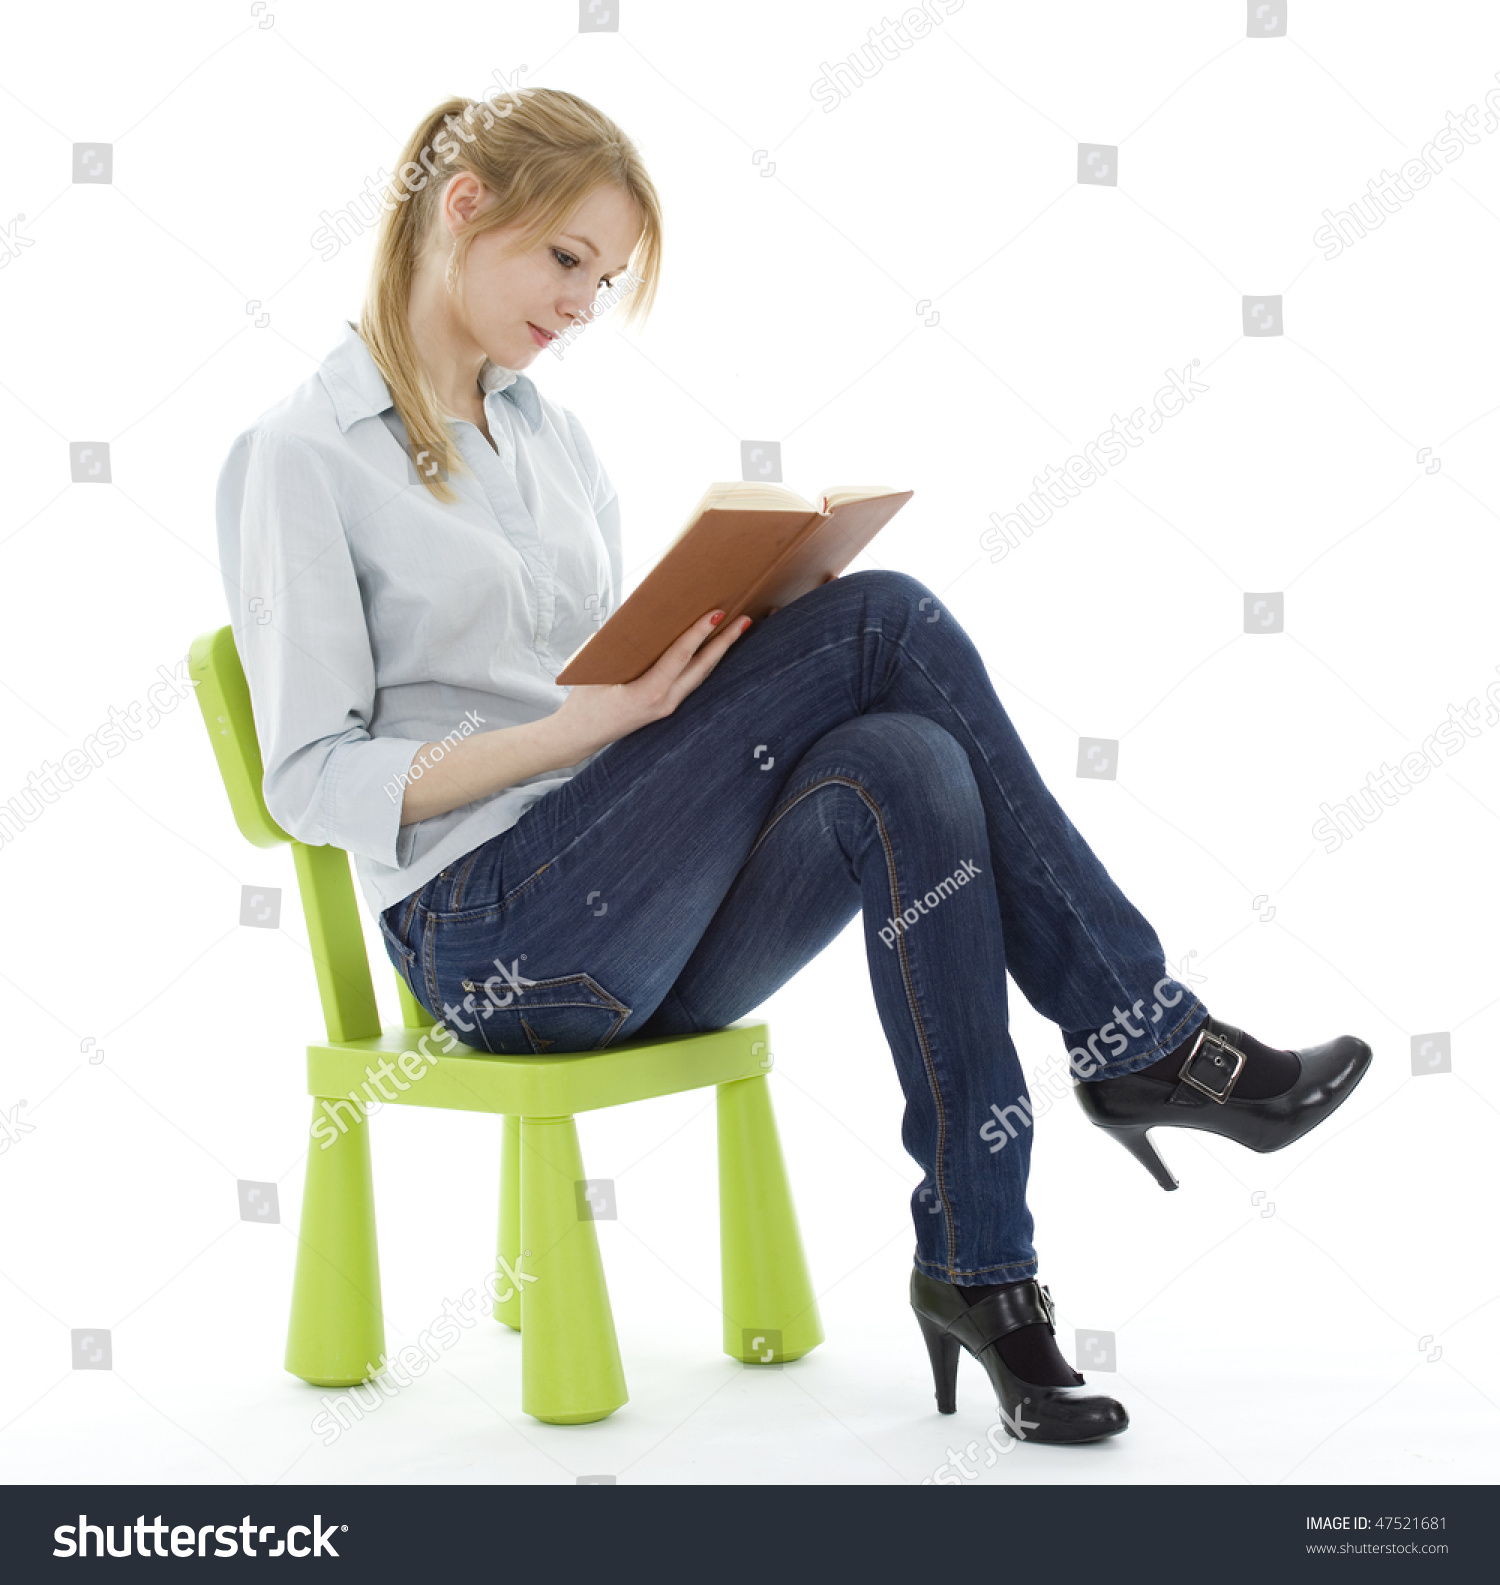 woman sitting in chair target lawn chairs folding on green childs young stock photo 47521681